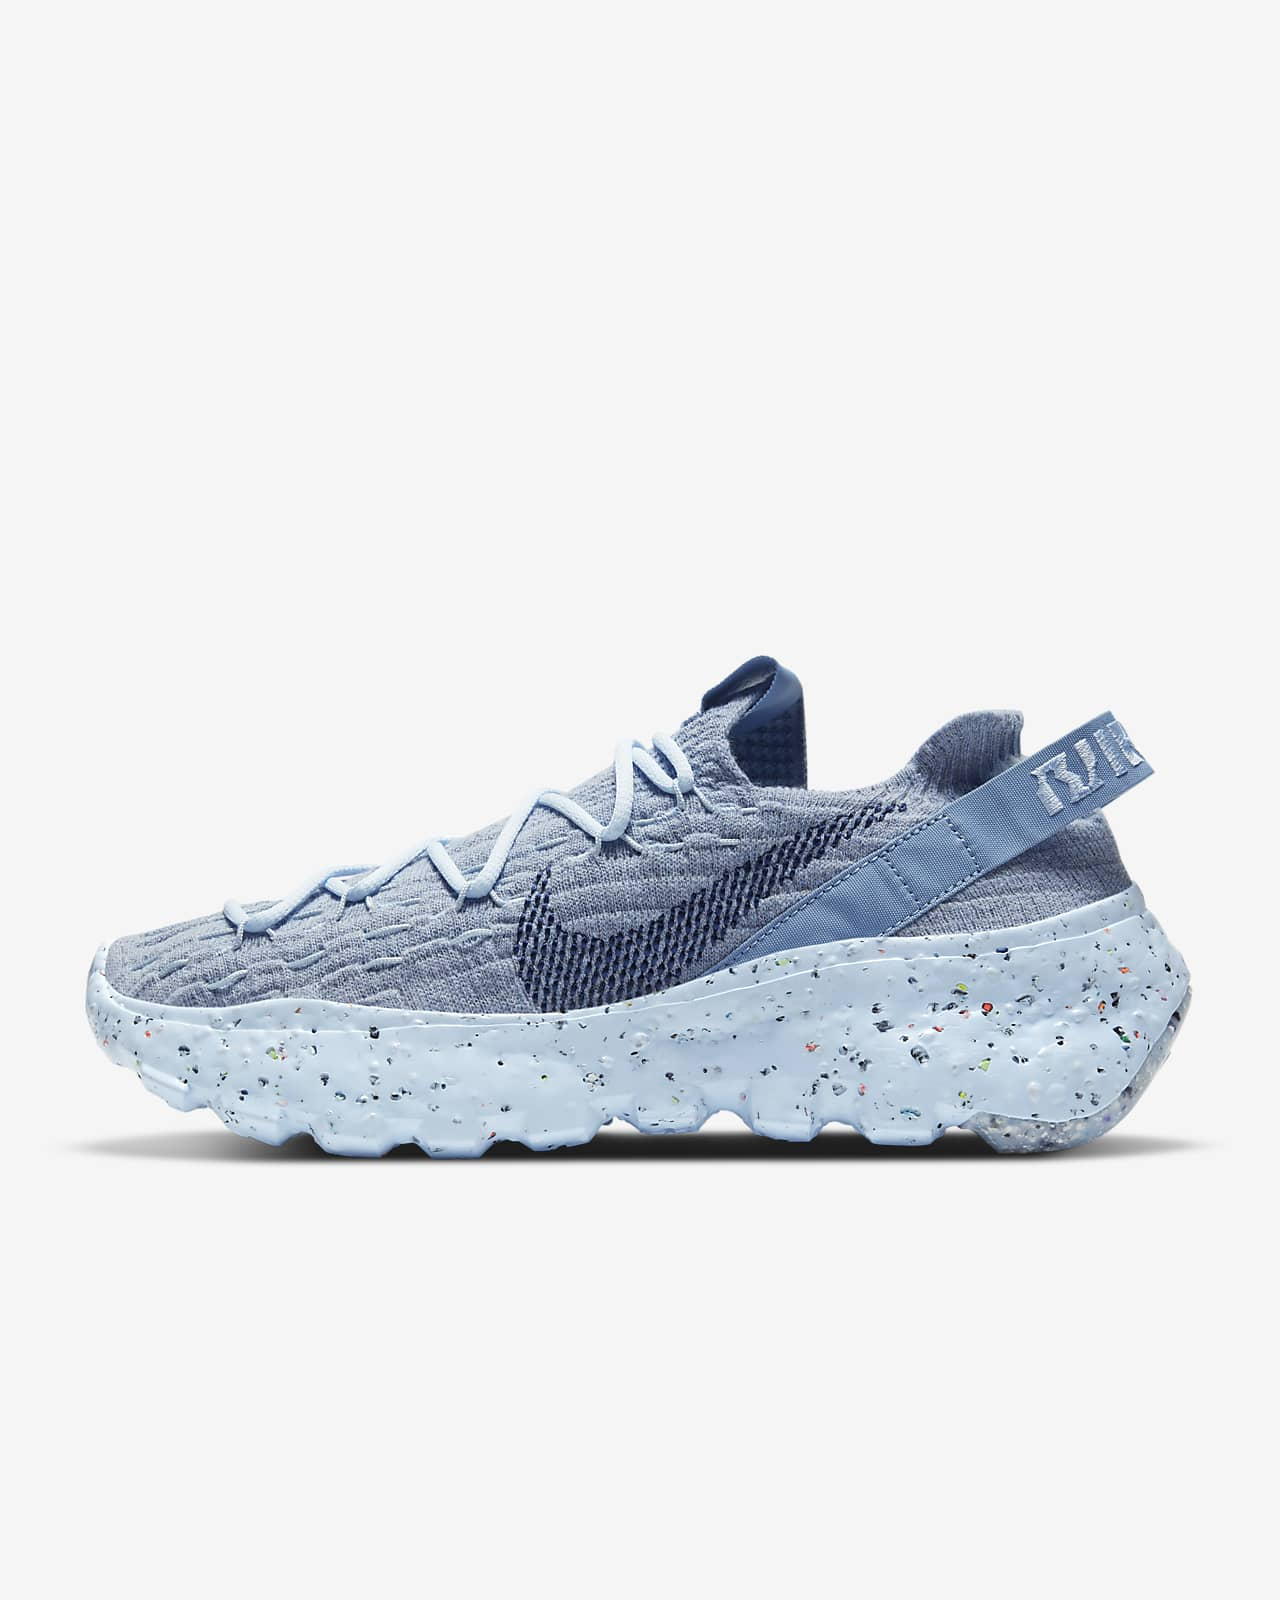 Nike Space Hippie 04 Damenschuh